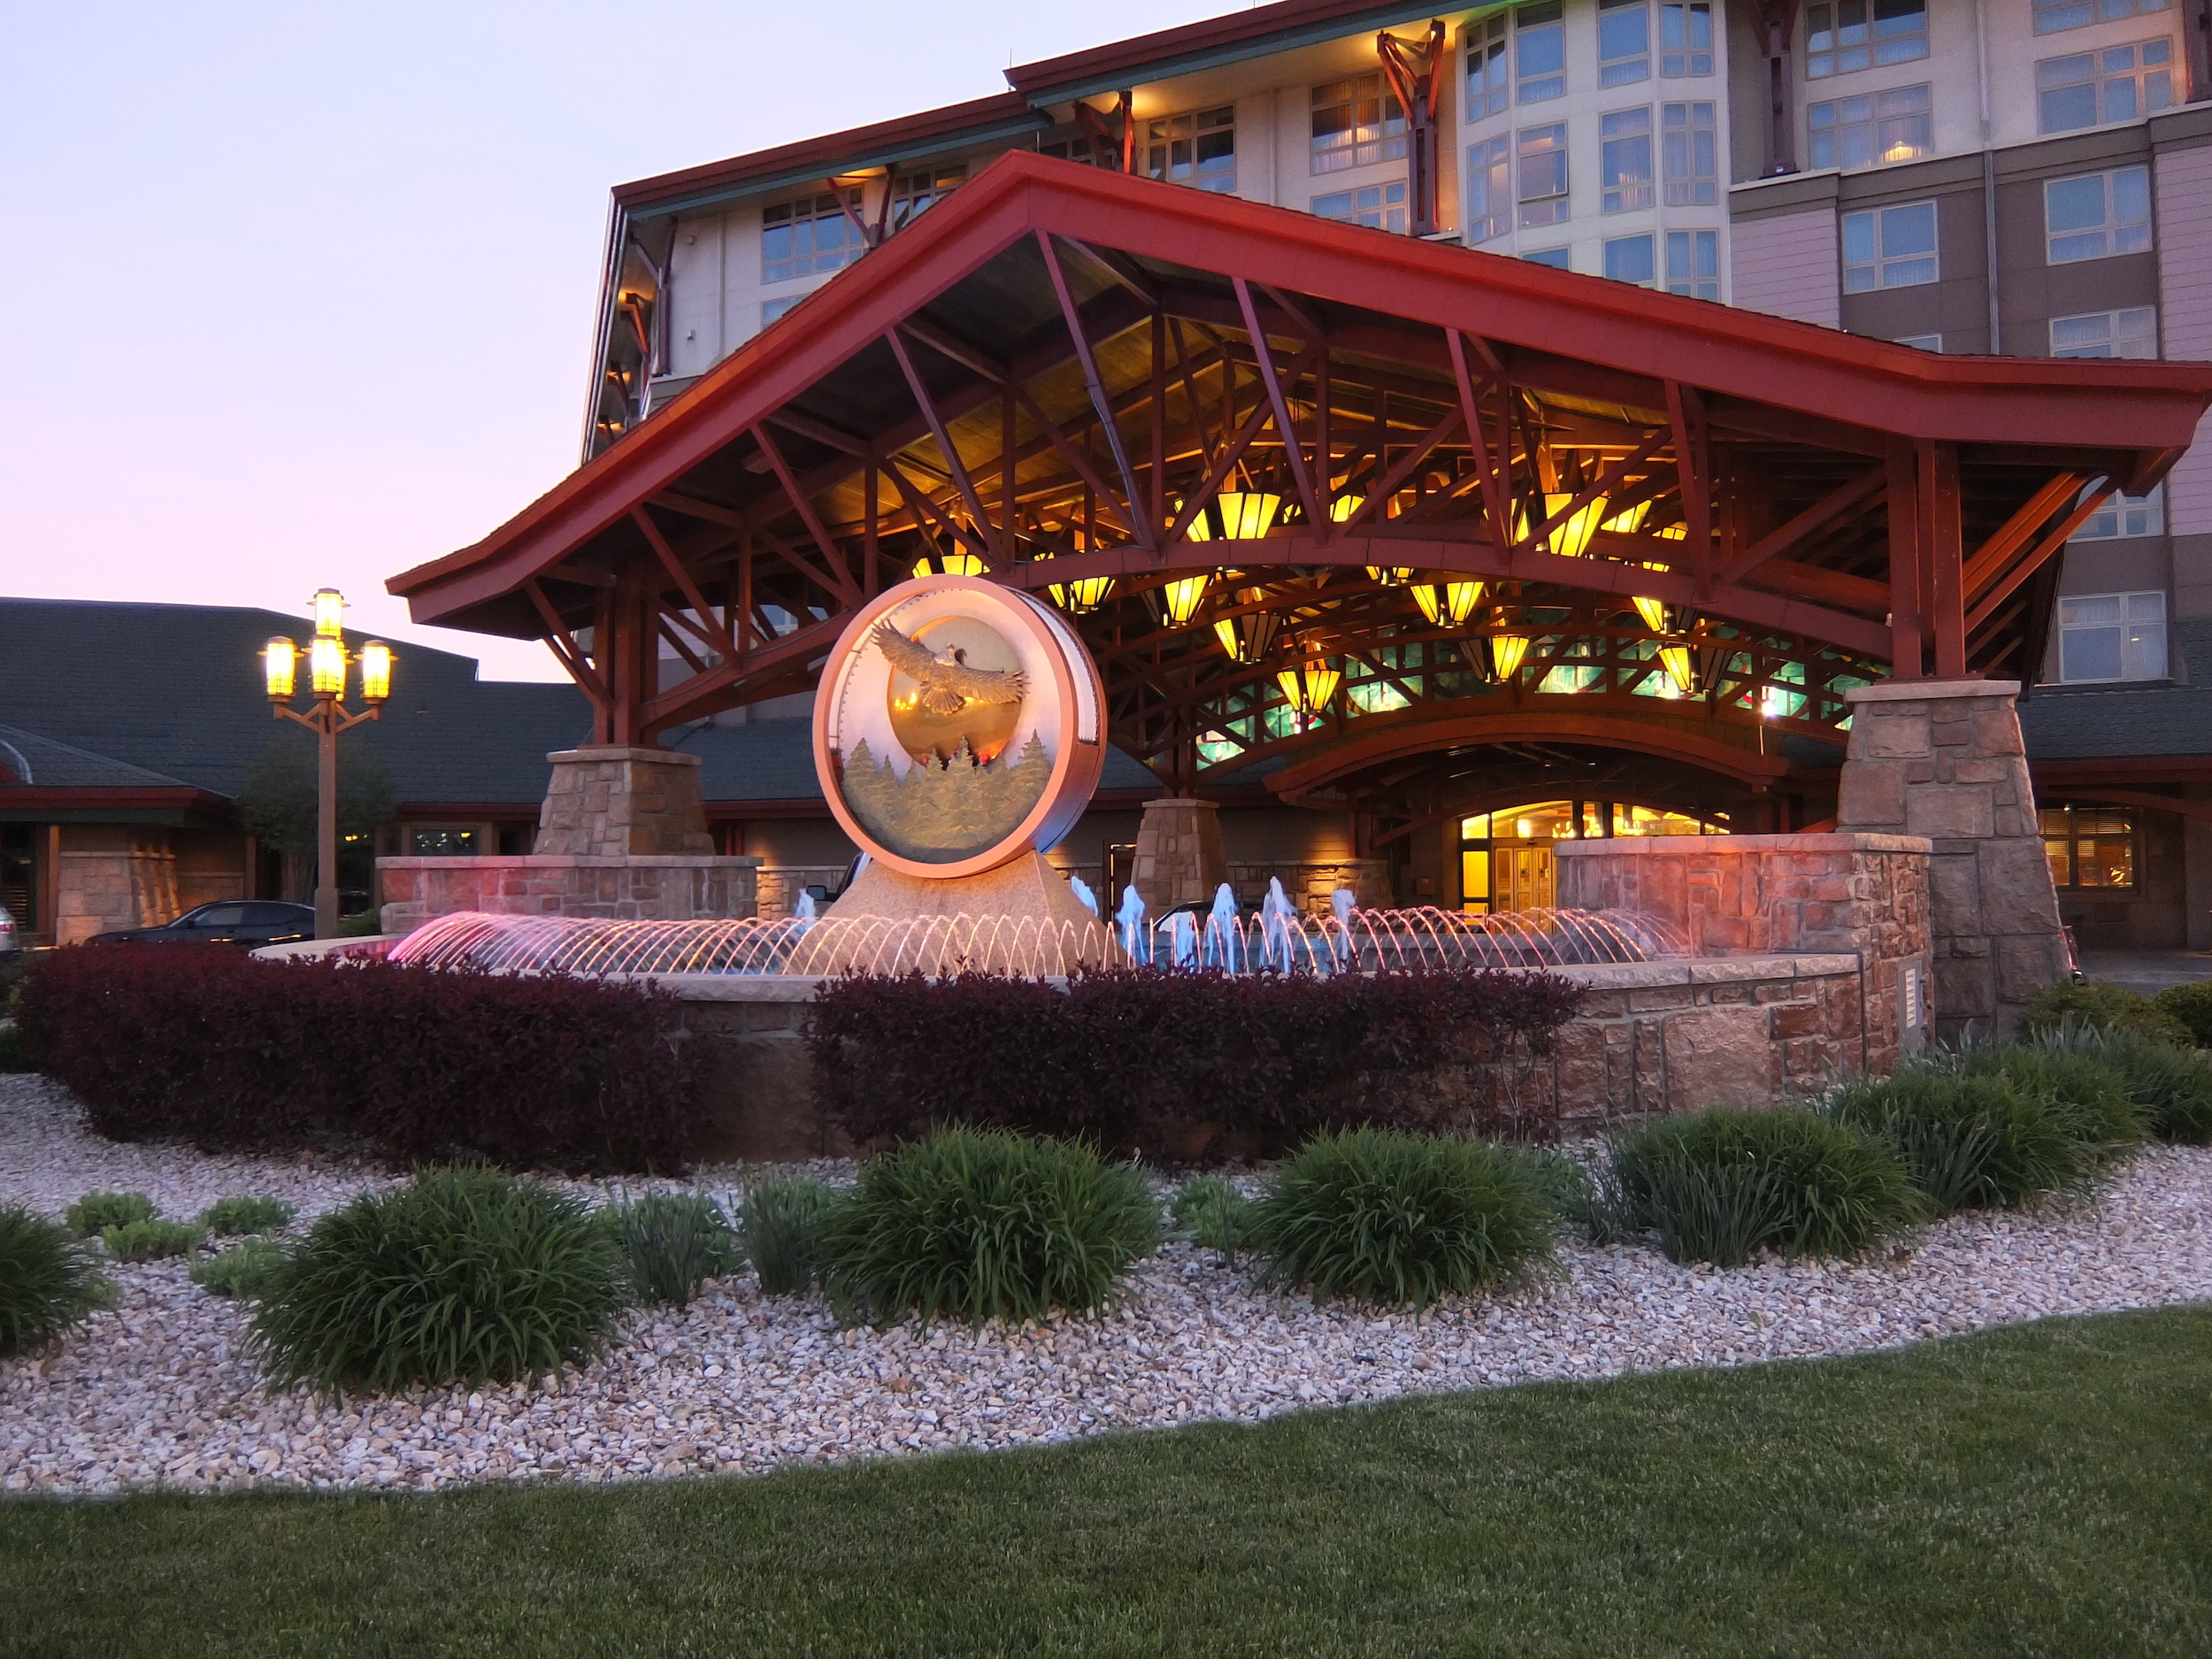 Saginaw Chippewa Tribe shares $2.91 million in gaming revenues with community